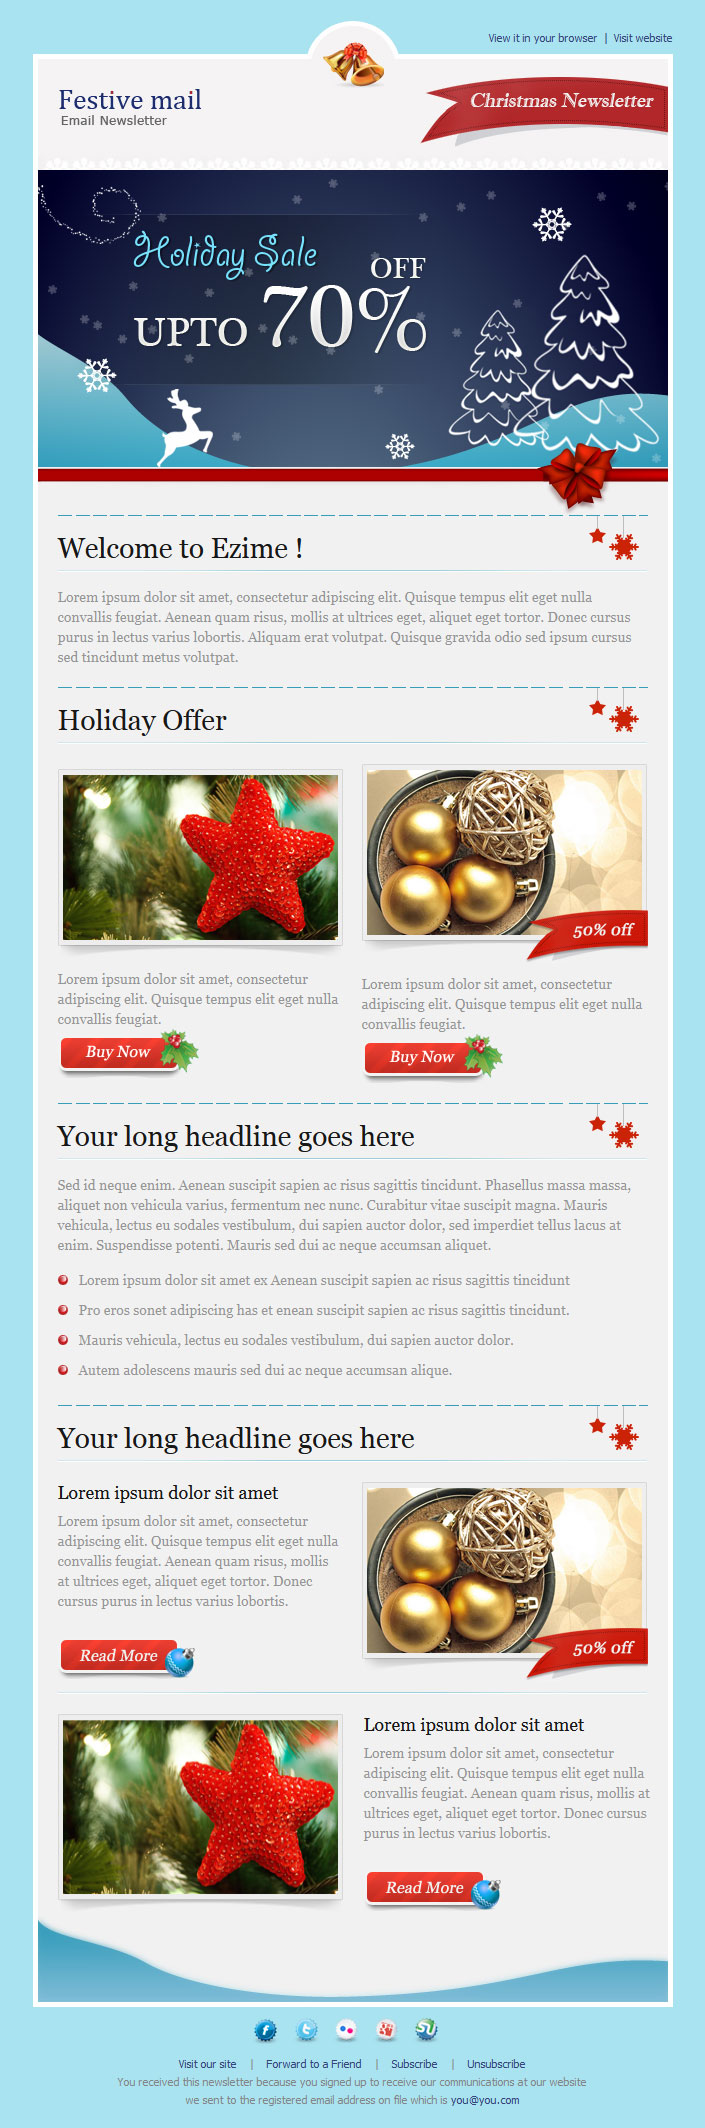 A Guide to Creating Email Newsletters | Email newsletters